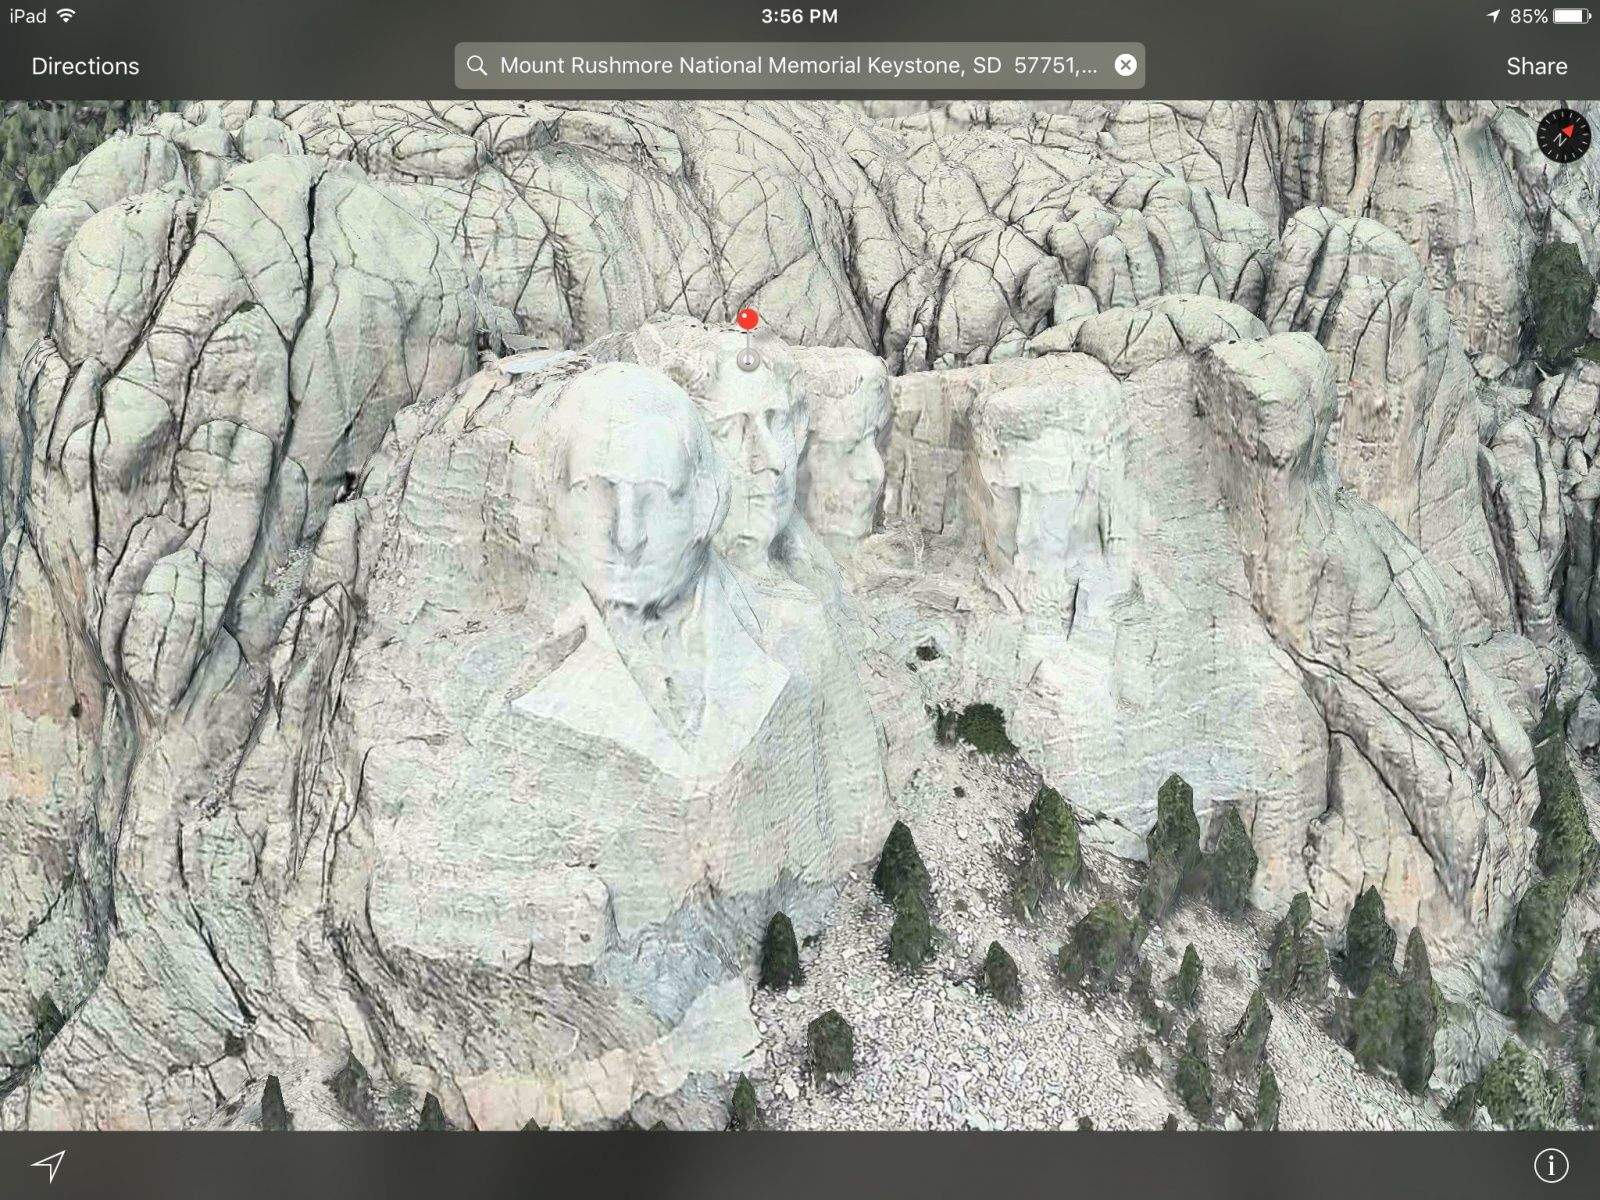 Get your vacation on with the best of Apple Maps Flyover Yosemite To Mount Rushmore Map on map to grand canyon, map to alaska, map to hawaii, map to new orleans, map to canada, map to disneyland, map to mexico, map to minnesota, map to chicago, map to las vegas, map to new york, map to yosemite, map to ellis island, map to the alamo, map to california, map to united states, map to niagra falls, map to maine, map to paris, map to yellowstone national park,